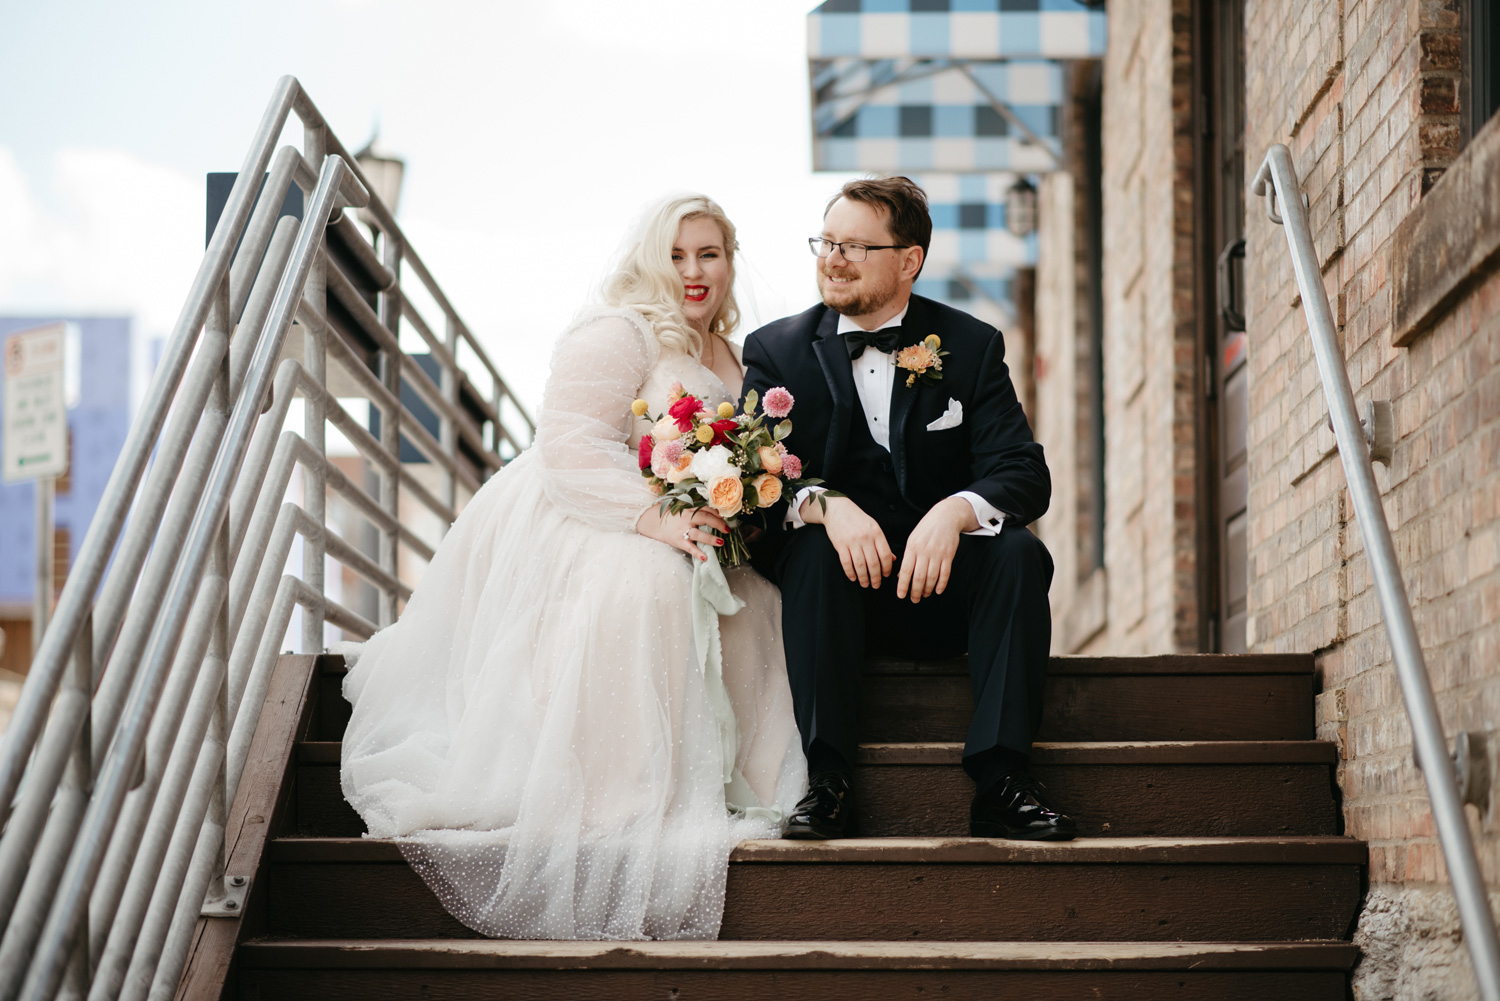 Bride and Groom sitting on outdoor steps leading up to venue